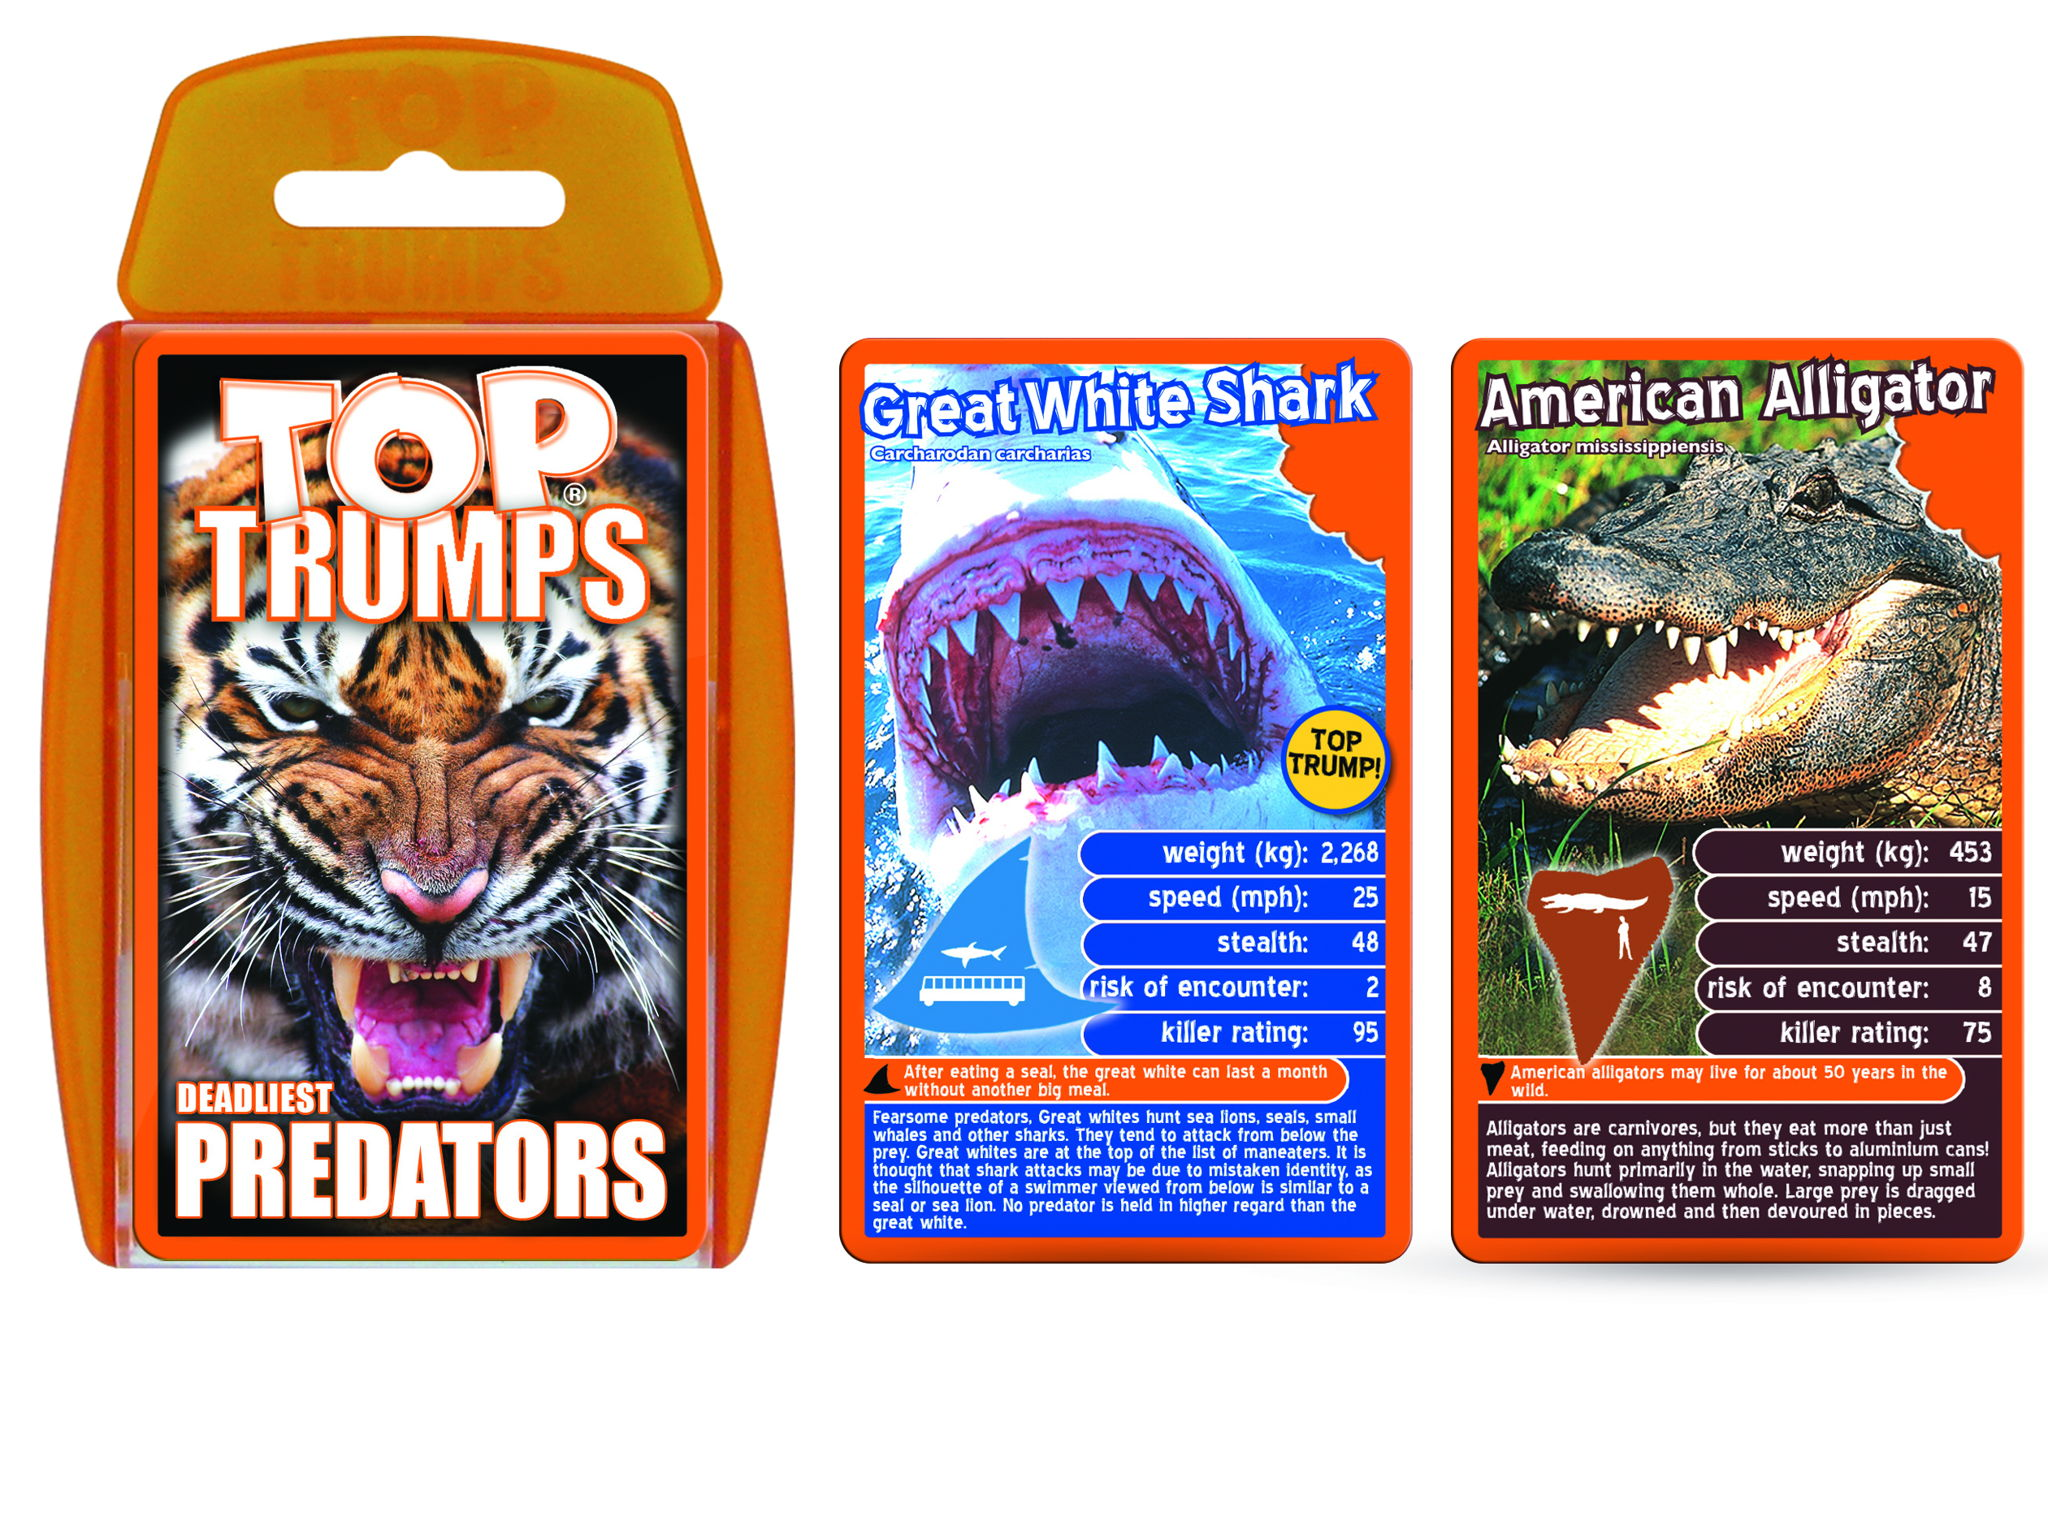 Official Predators Top Trumps